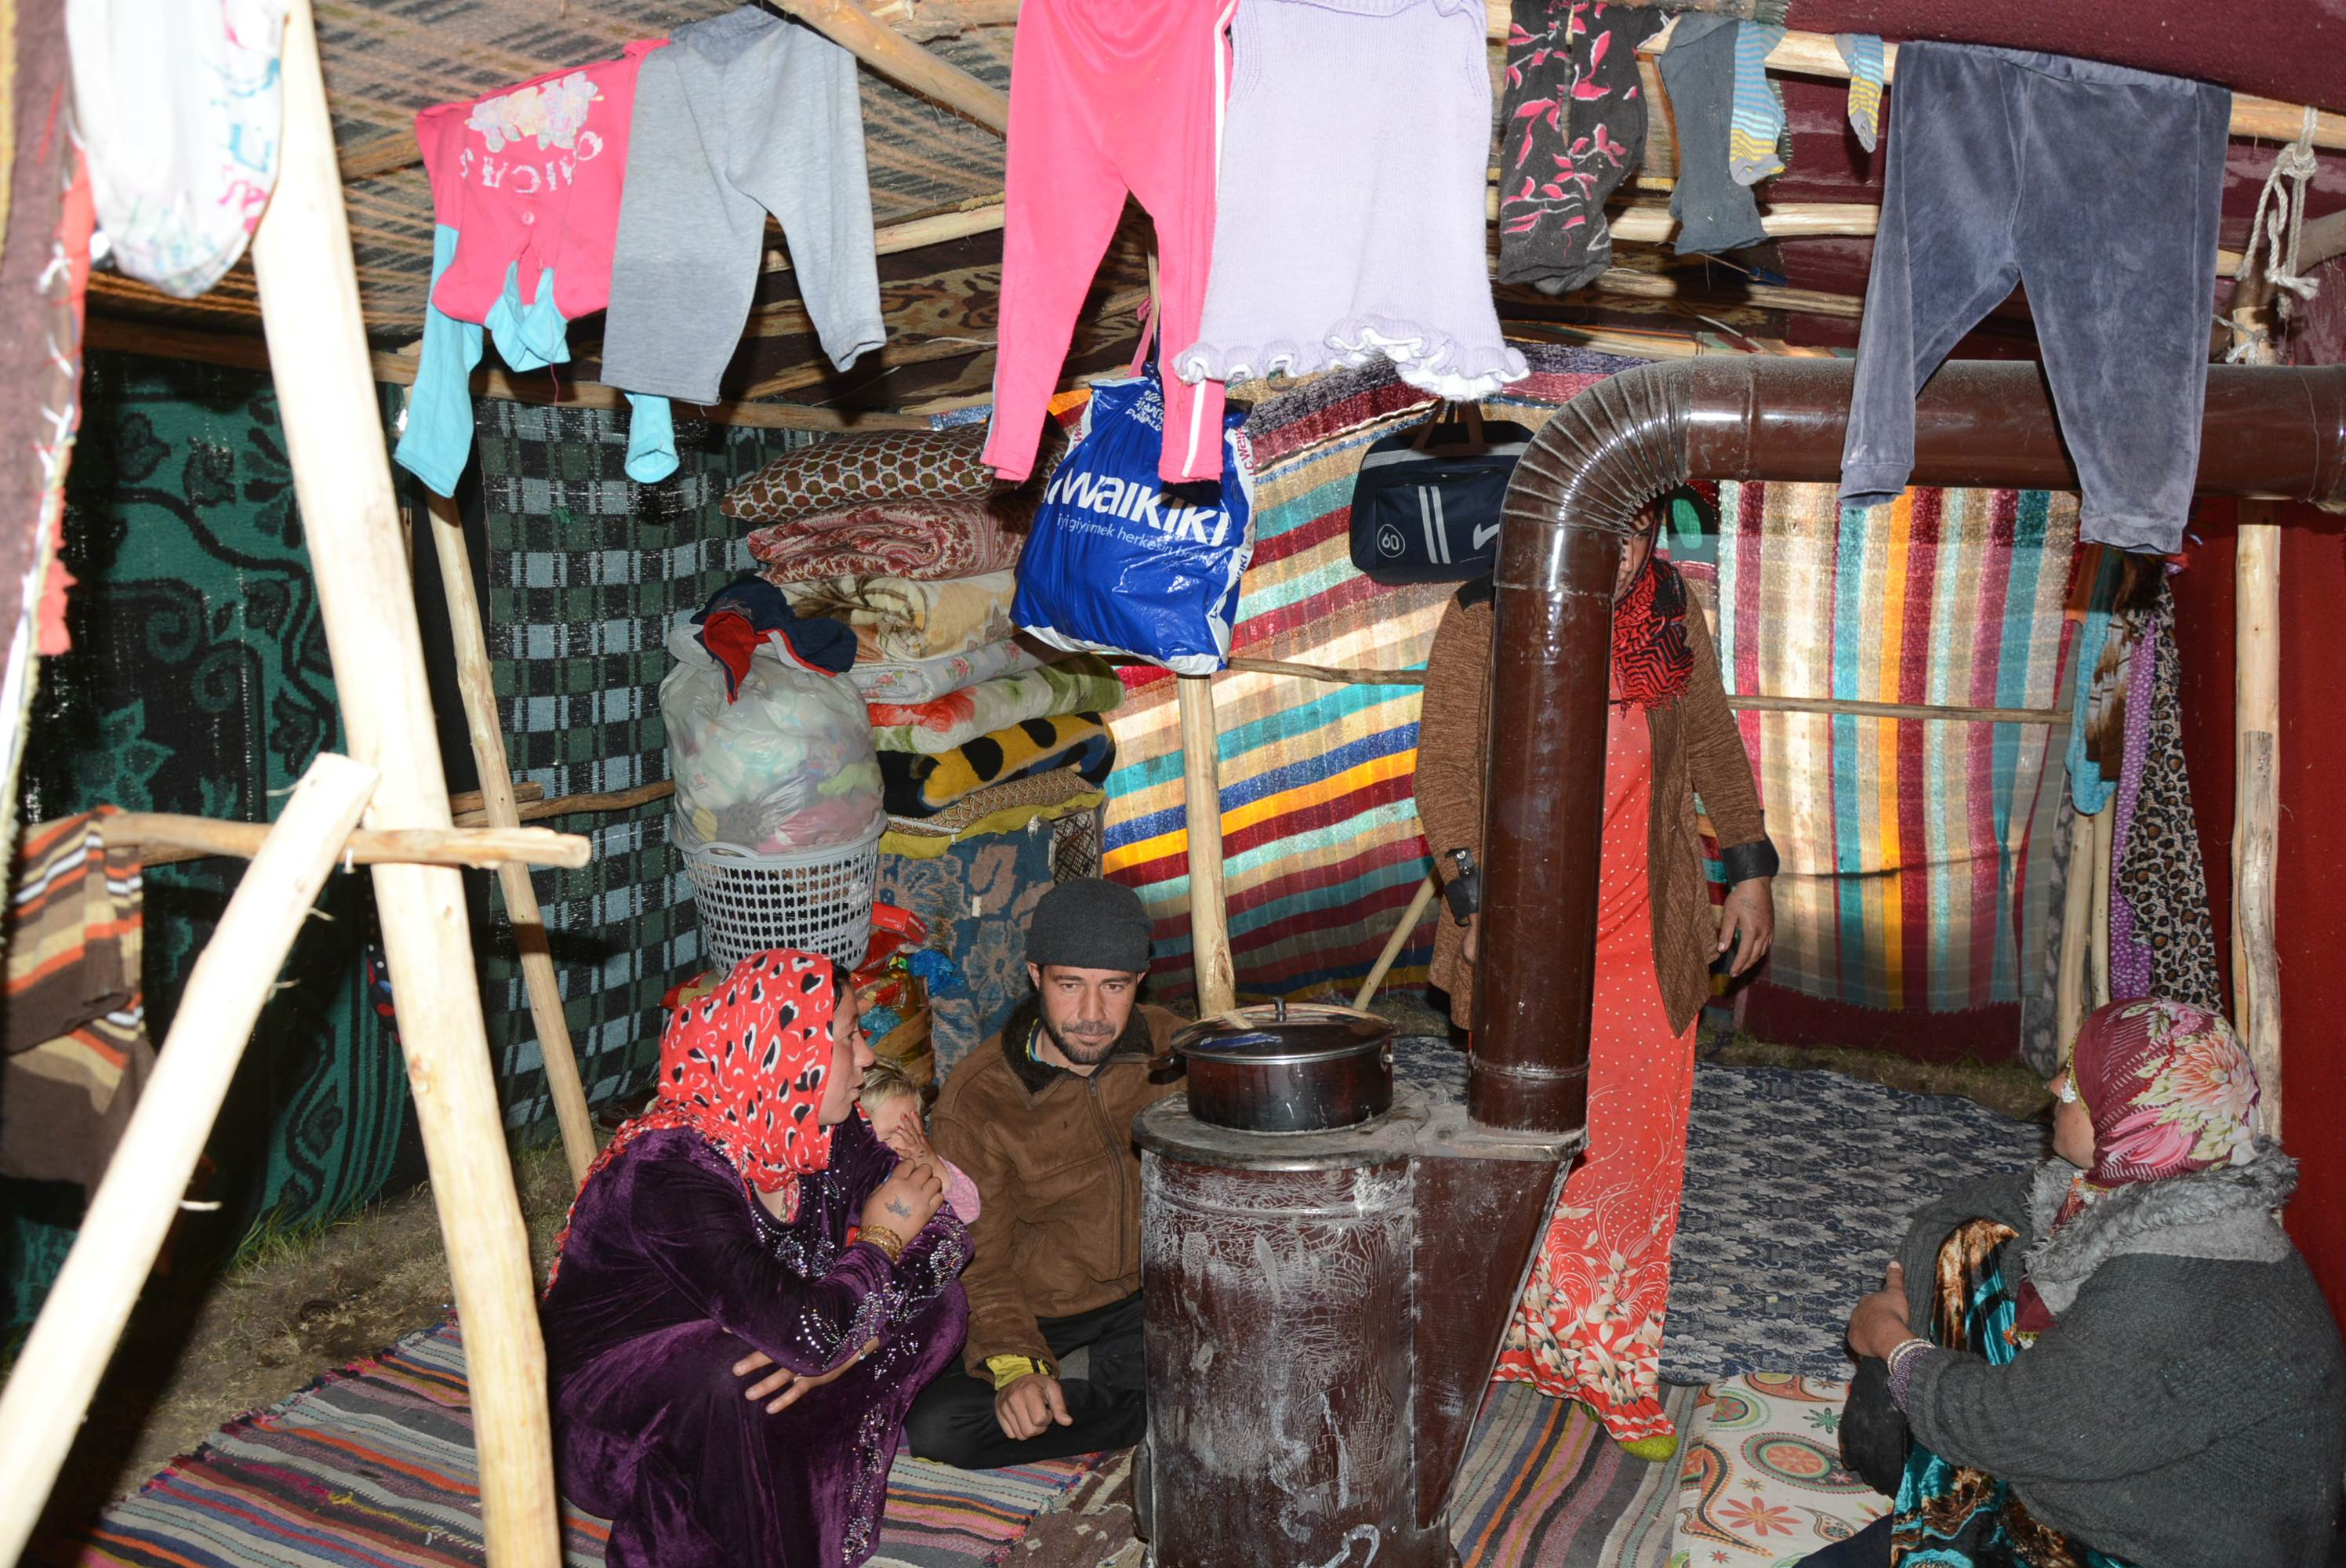 The family's tent was made out of blankets and they use a wood or coal burning stove to heat their shelter (AA Photo)